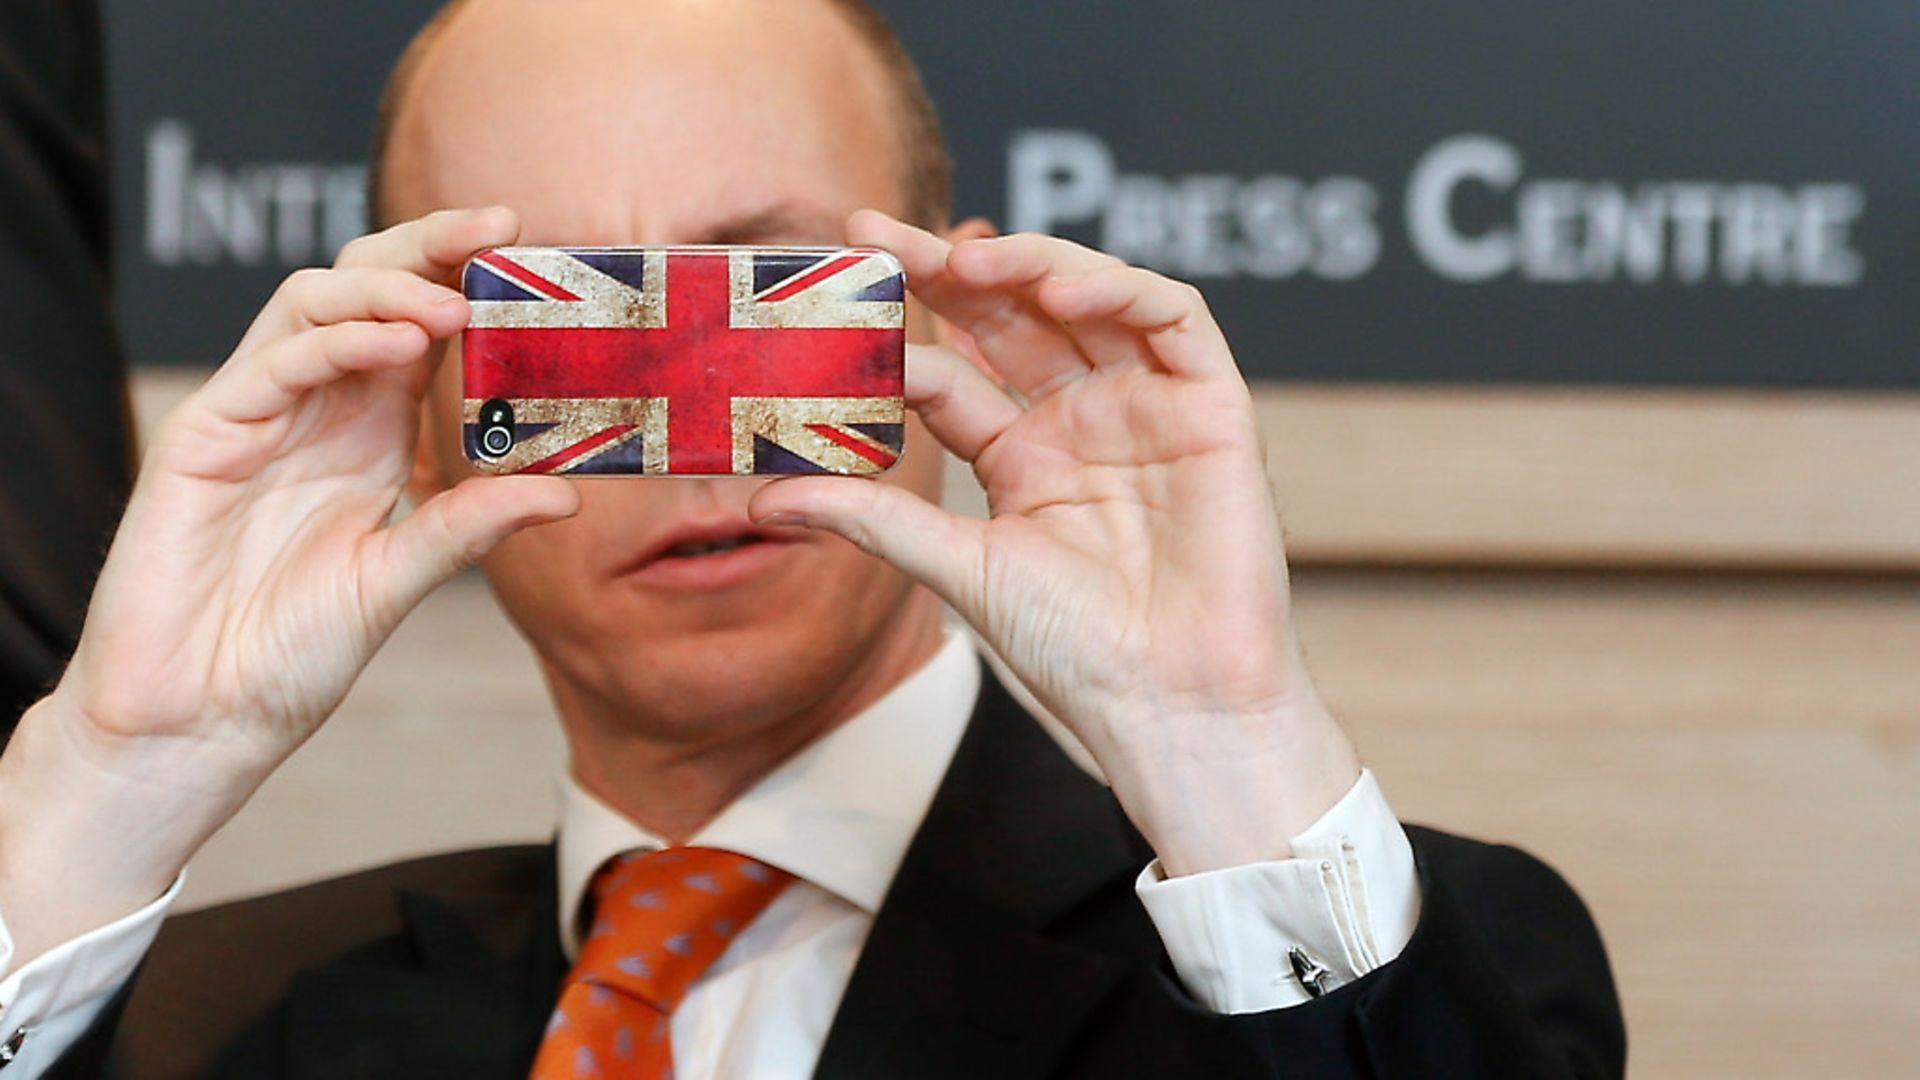 Christopher Booker's old slot in the Telegraph was given to Daniel Hannan, for whom he had utter contempt. Photograph: Bruno Fahy/PA. - Credit: PA Images